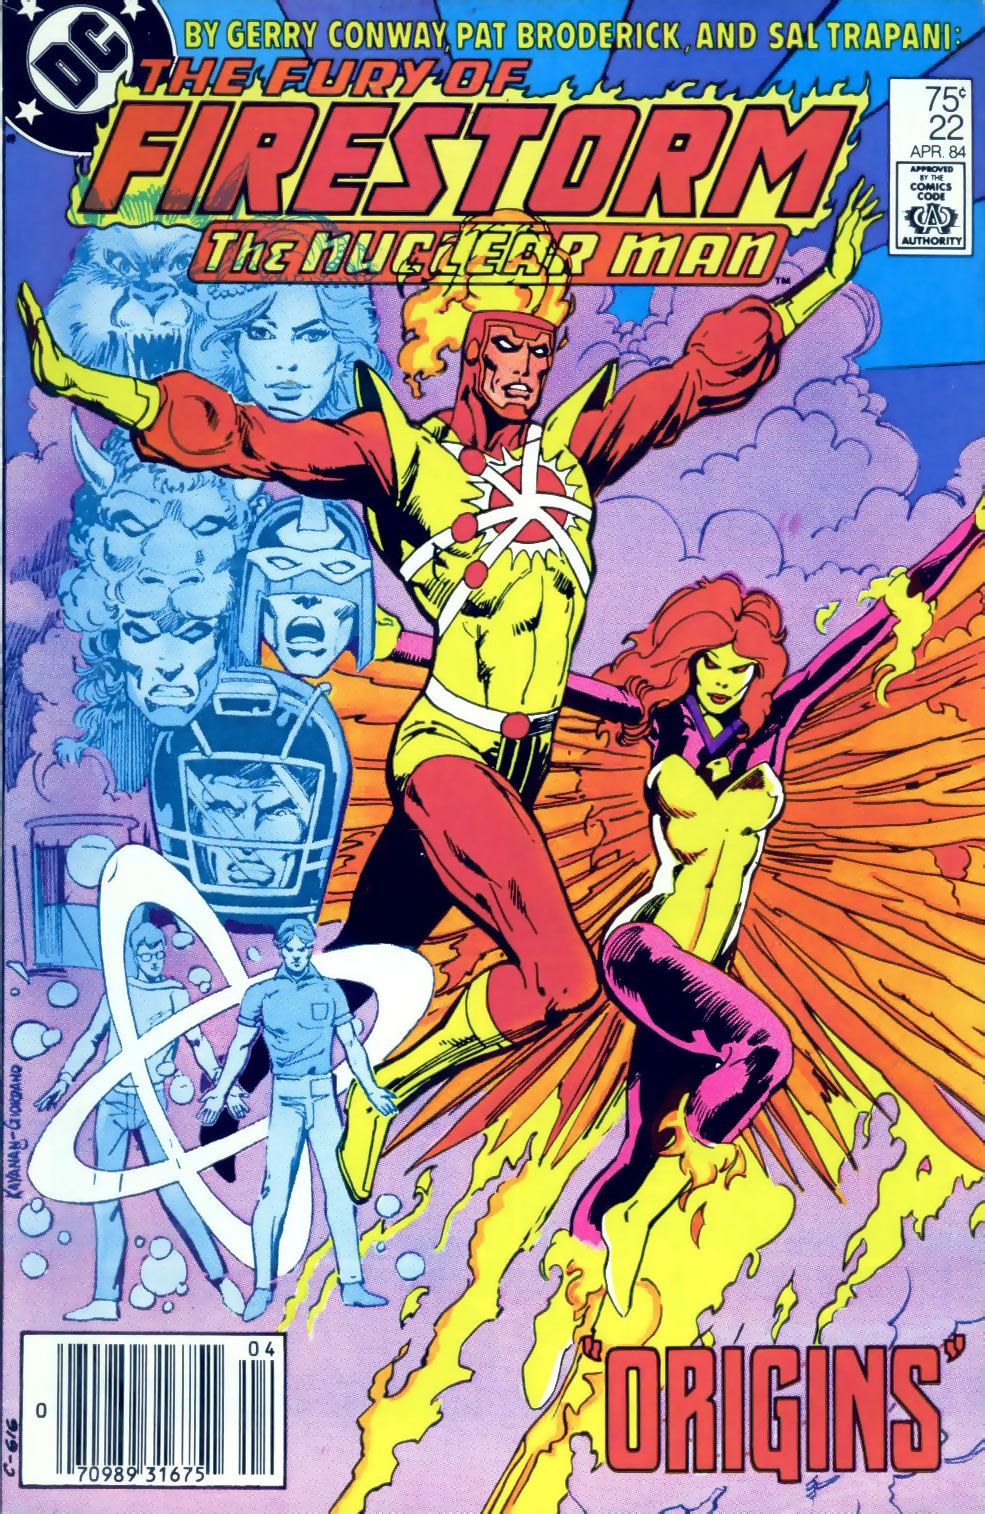 Fury of Firestorm #22 cover by Rafael Kayanan and Dick Giordano